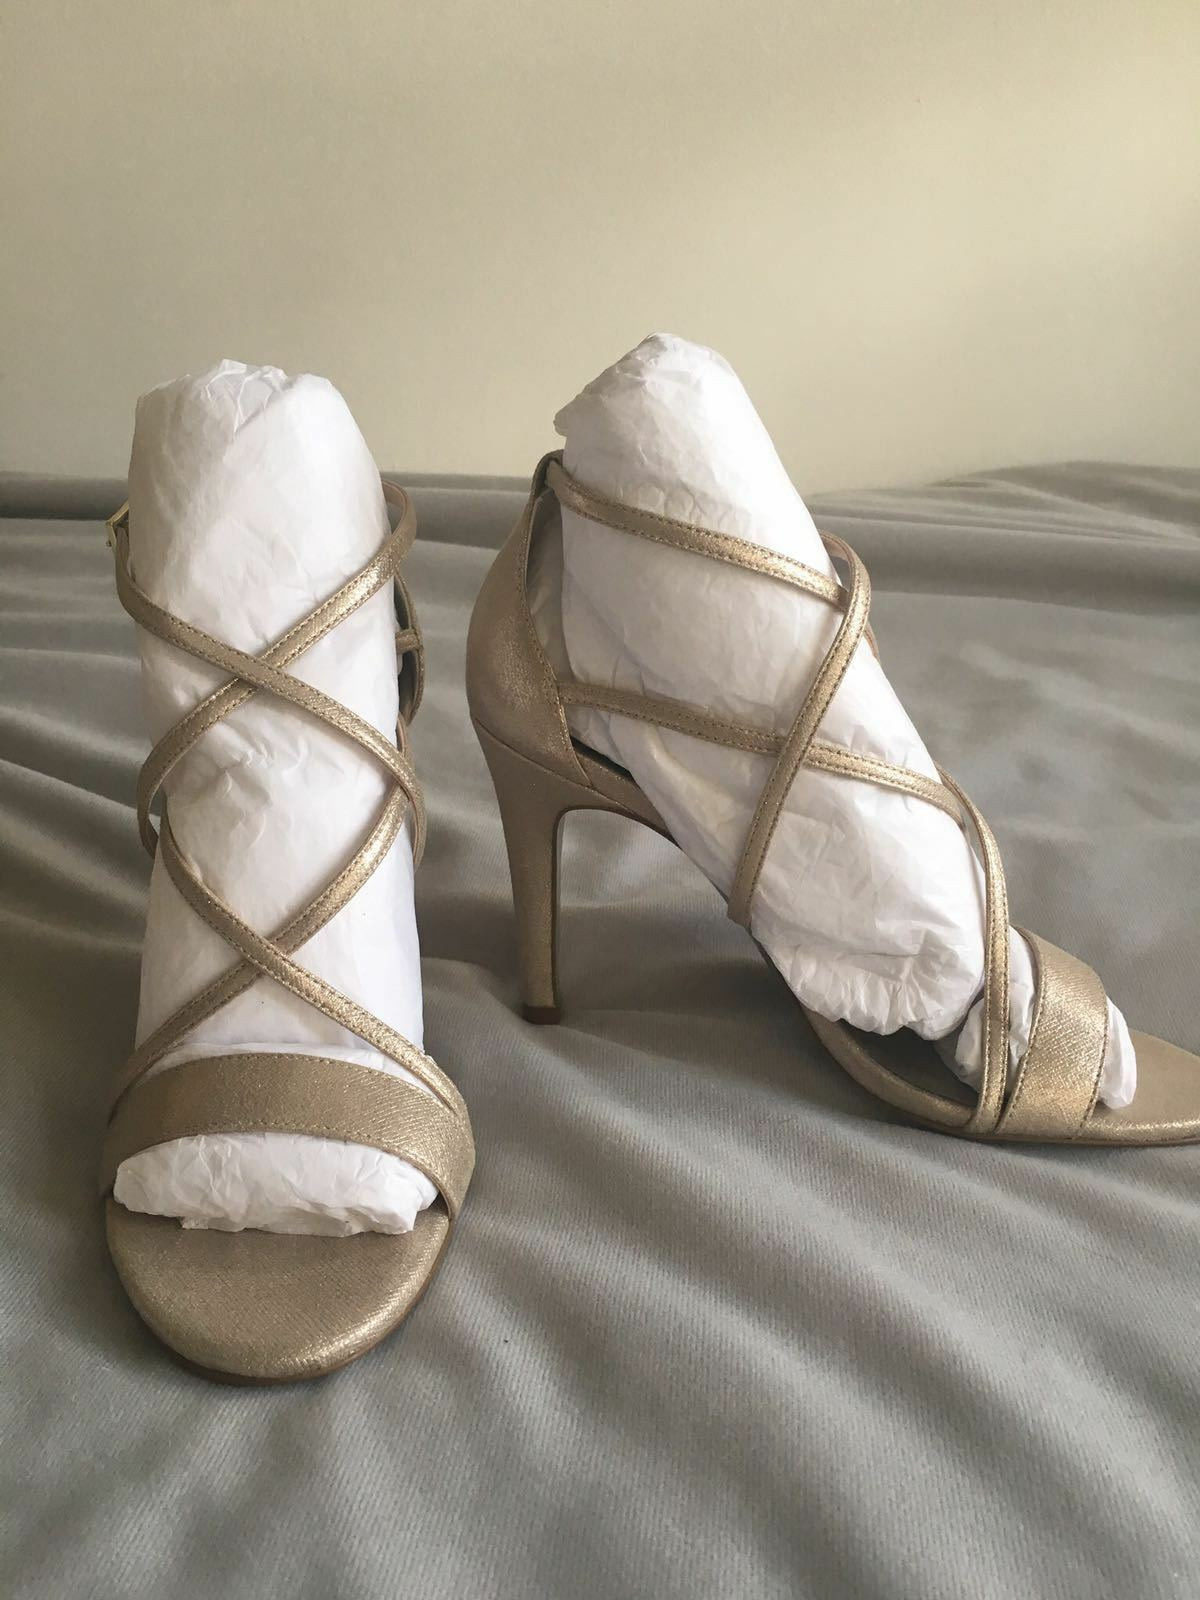 New Jacques Jacques Jacques green Metallic gold Strappy Cross Over Heels Size 4 - WERE 196e0b